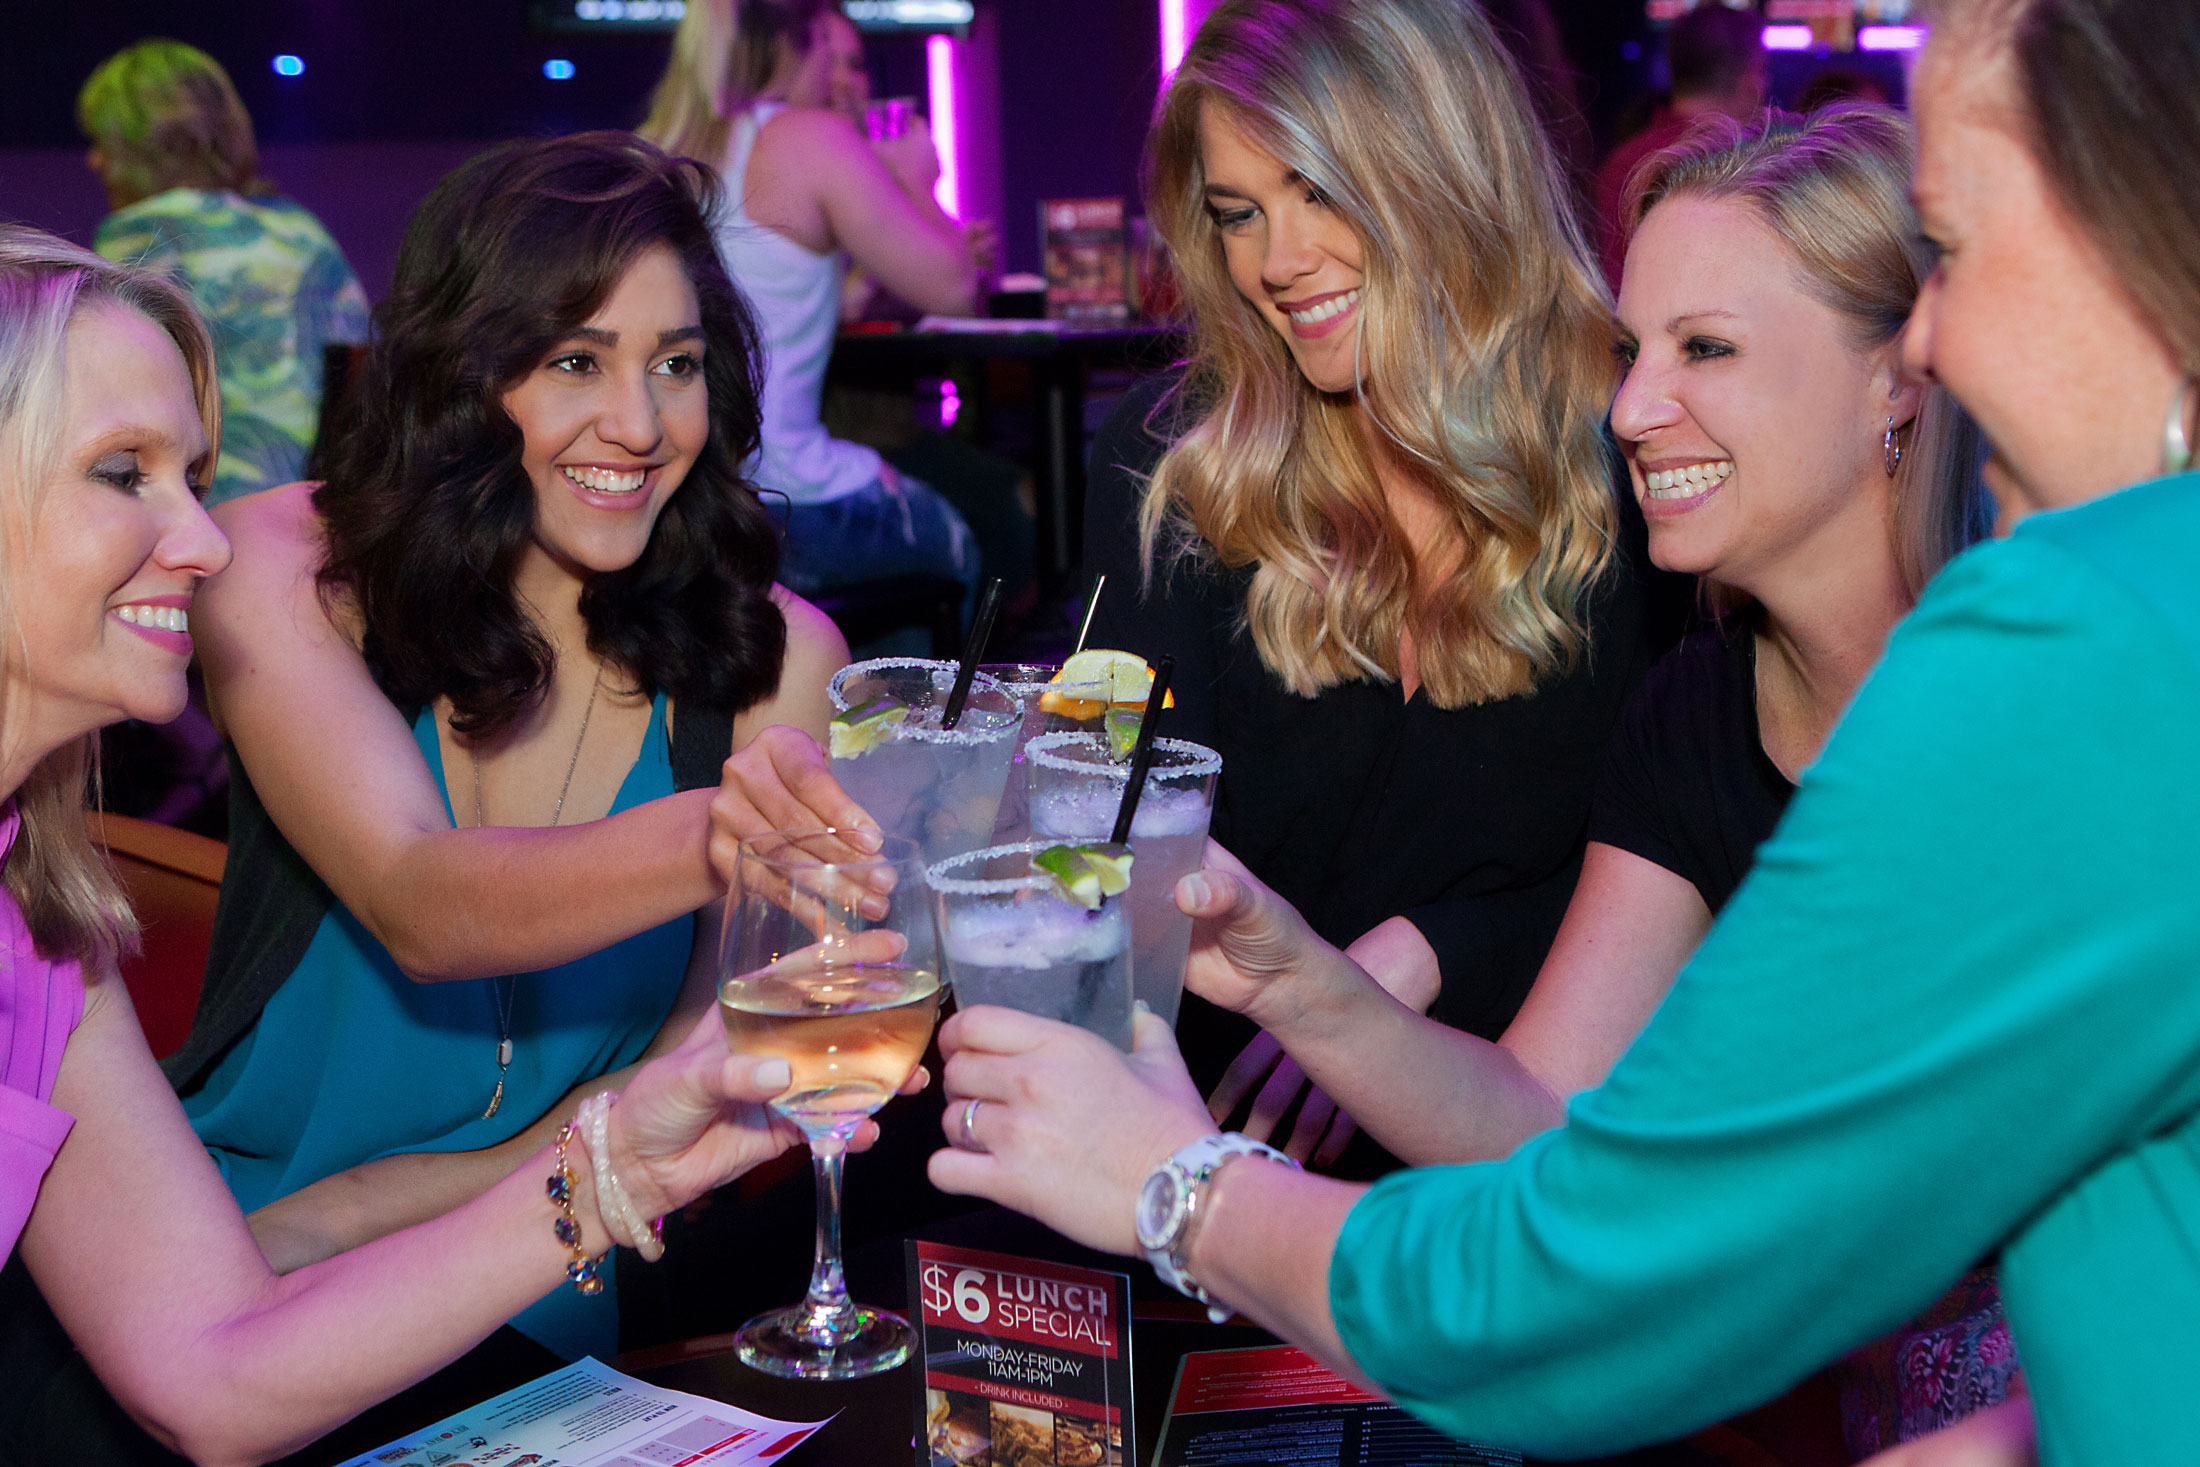 Fun dining and delicious drinks